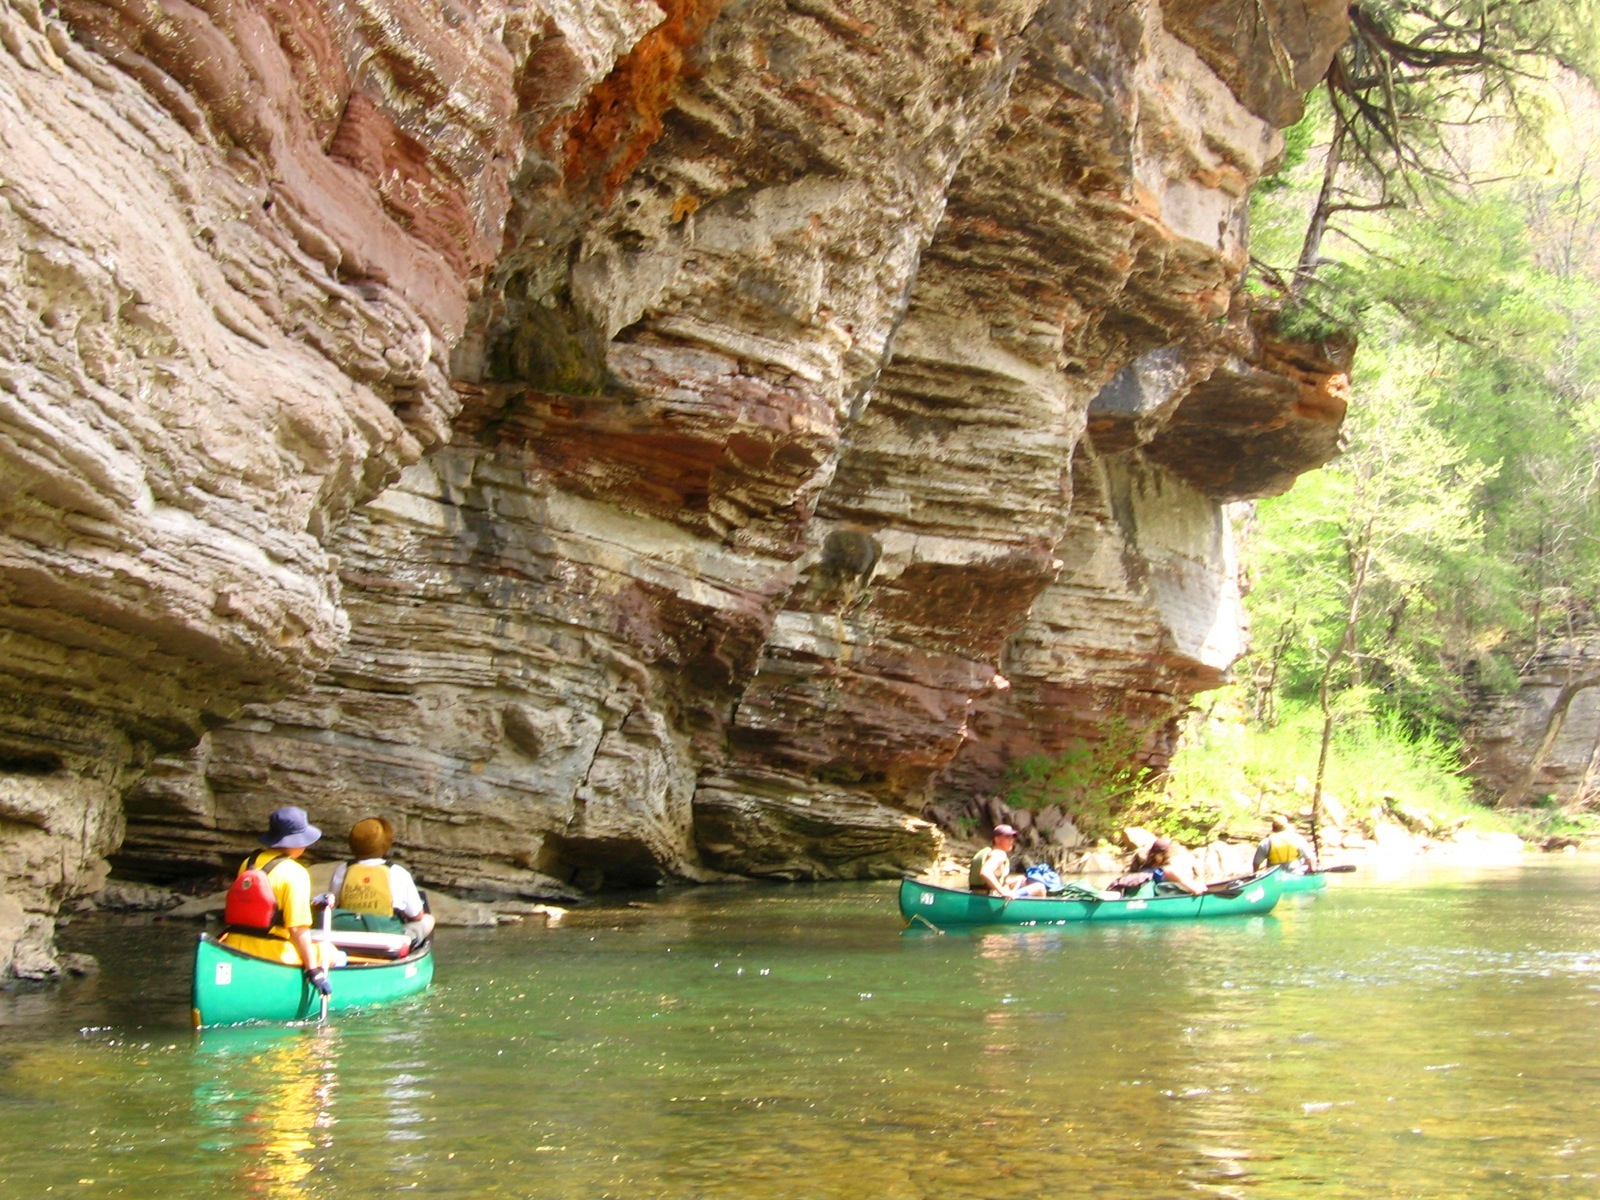 Two canoes paddle past tan and red overhanging cliffs near the Hasty campsite.